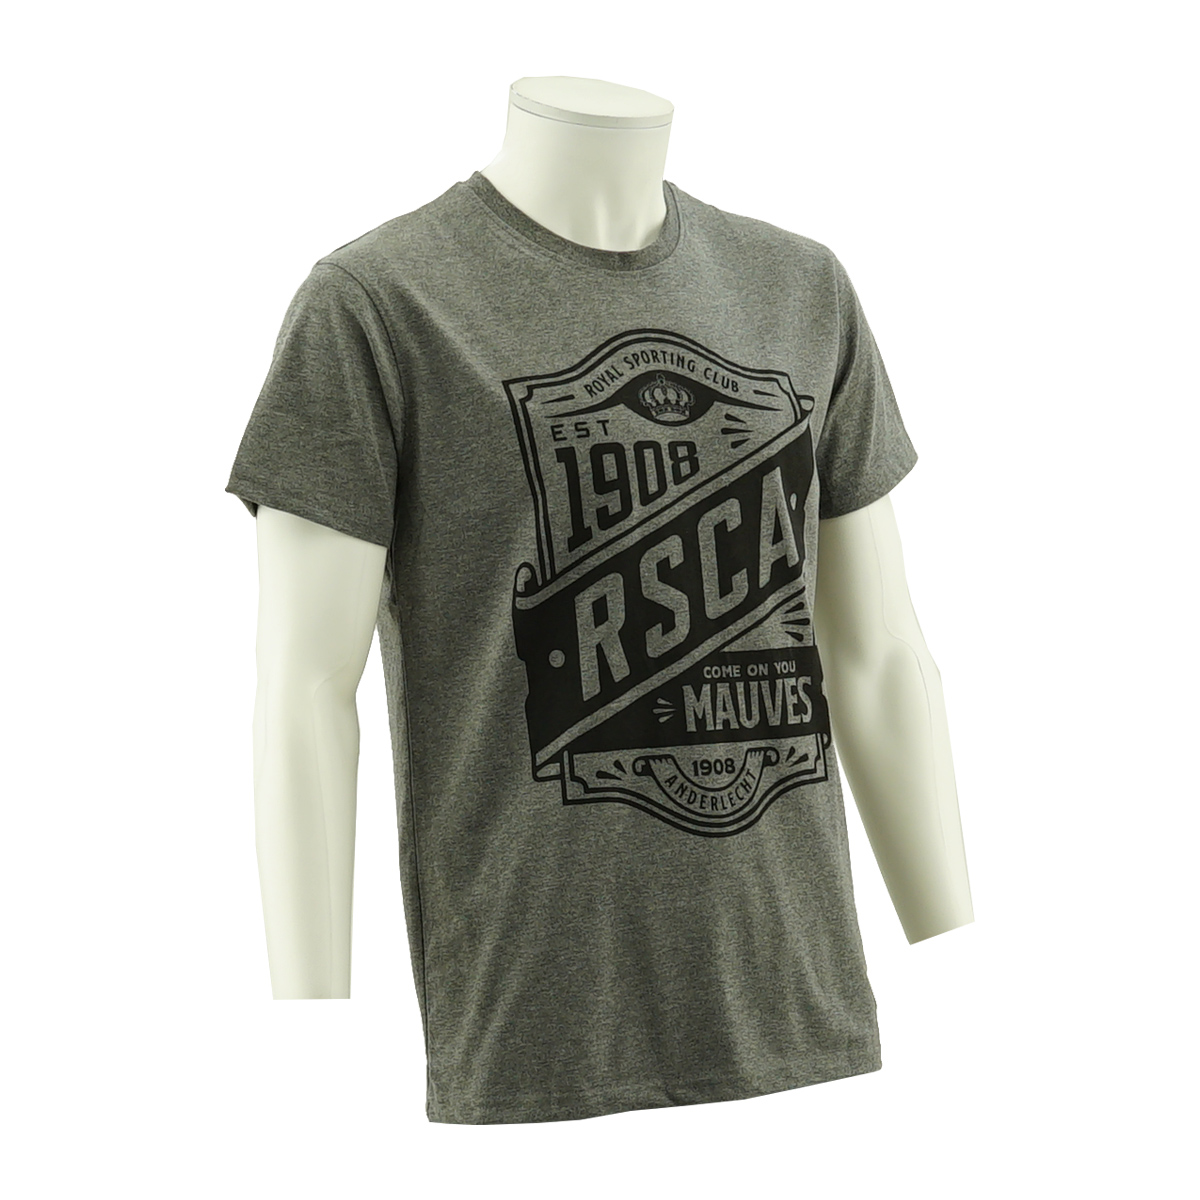 RSCA T-Shirt Heren Retro Design